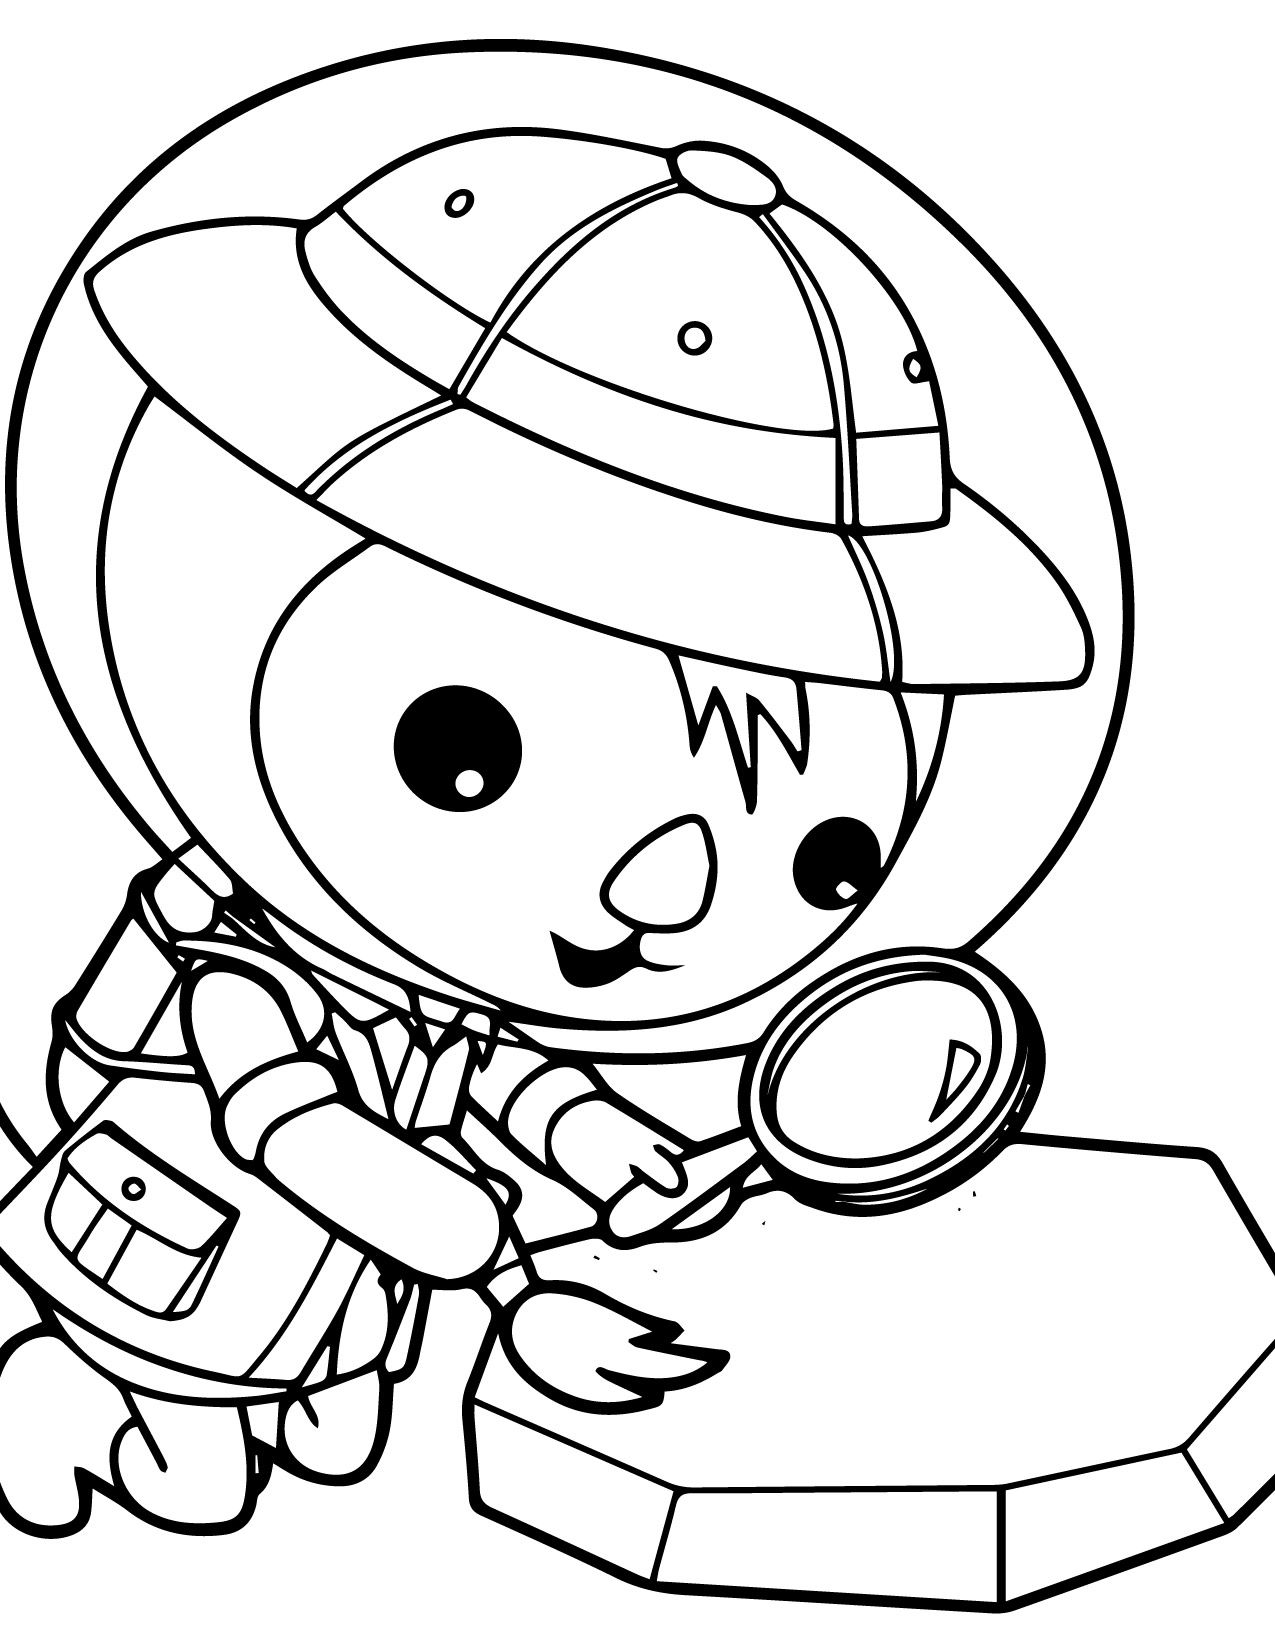 captain barnacles coloring pages pin by krista emery on twins octonauts coloring pages captain barnacles pages coloring